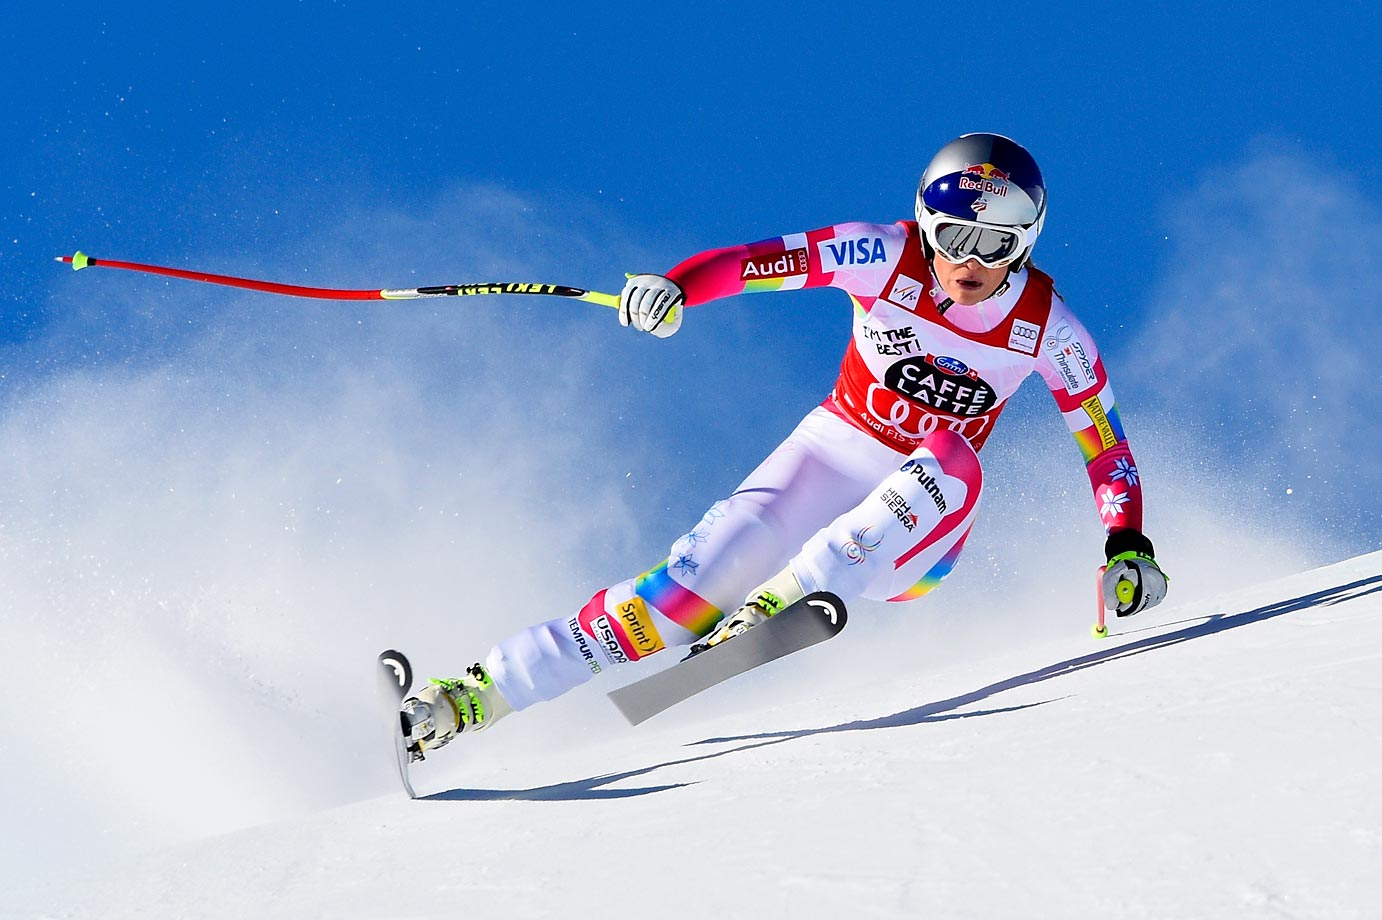 Lindsey Vonn of the U.S. competes at the Audi FIS Alpine Ski World Cup Downhill on Jan. 24 in Switzerland.